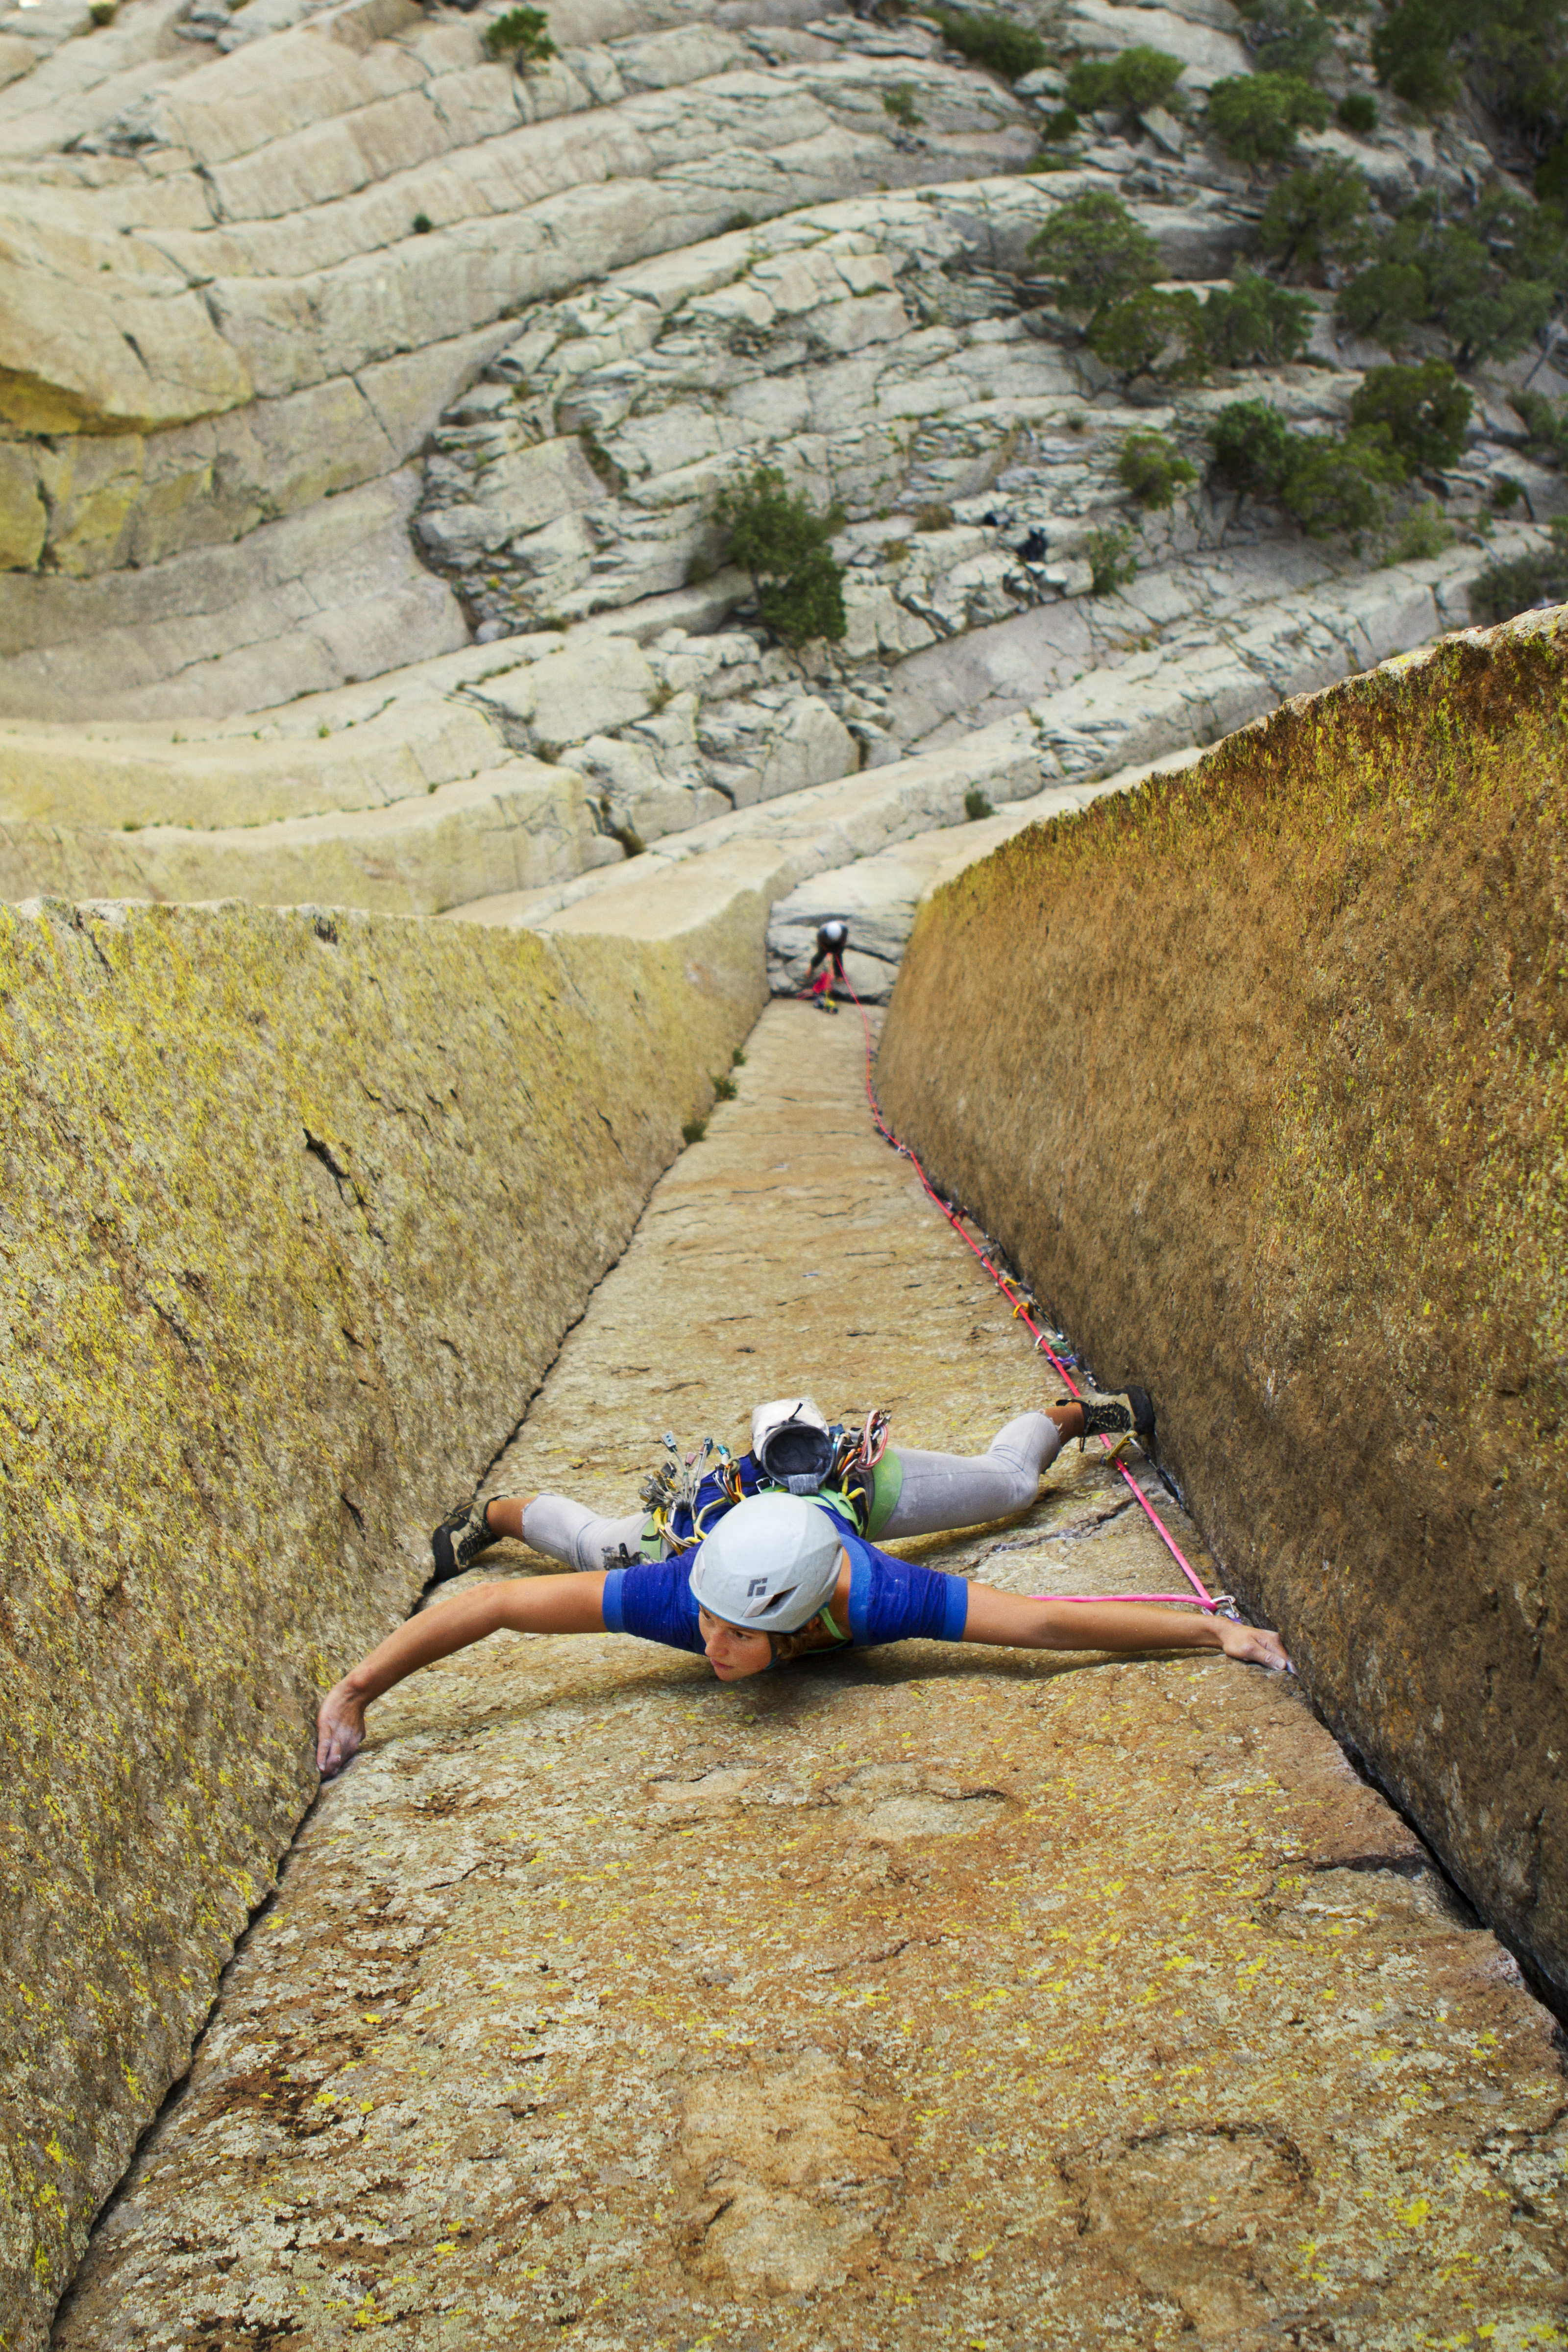 Devils tower climbing pictures